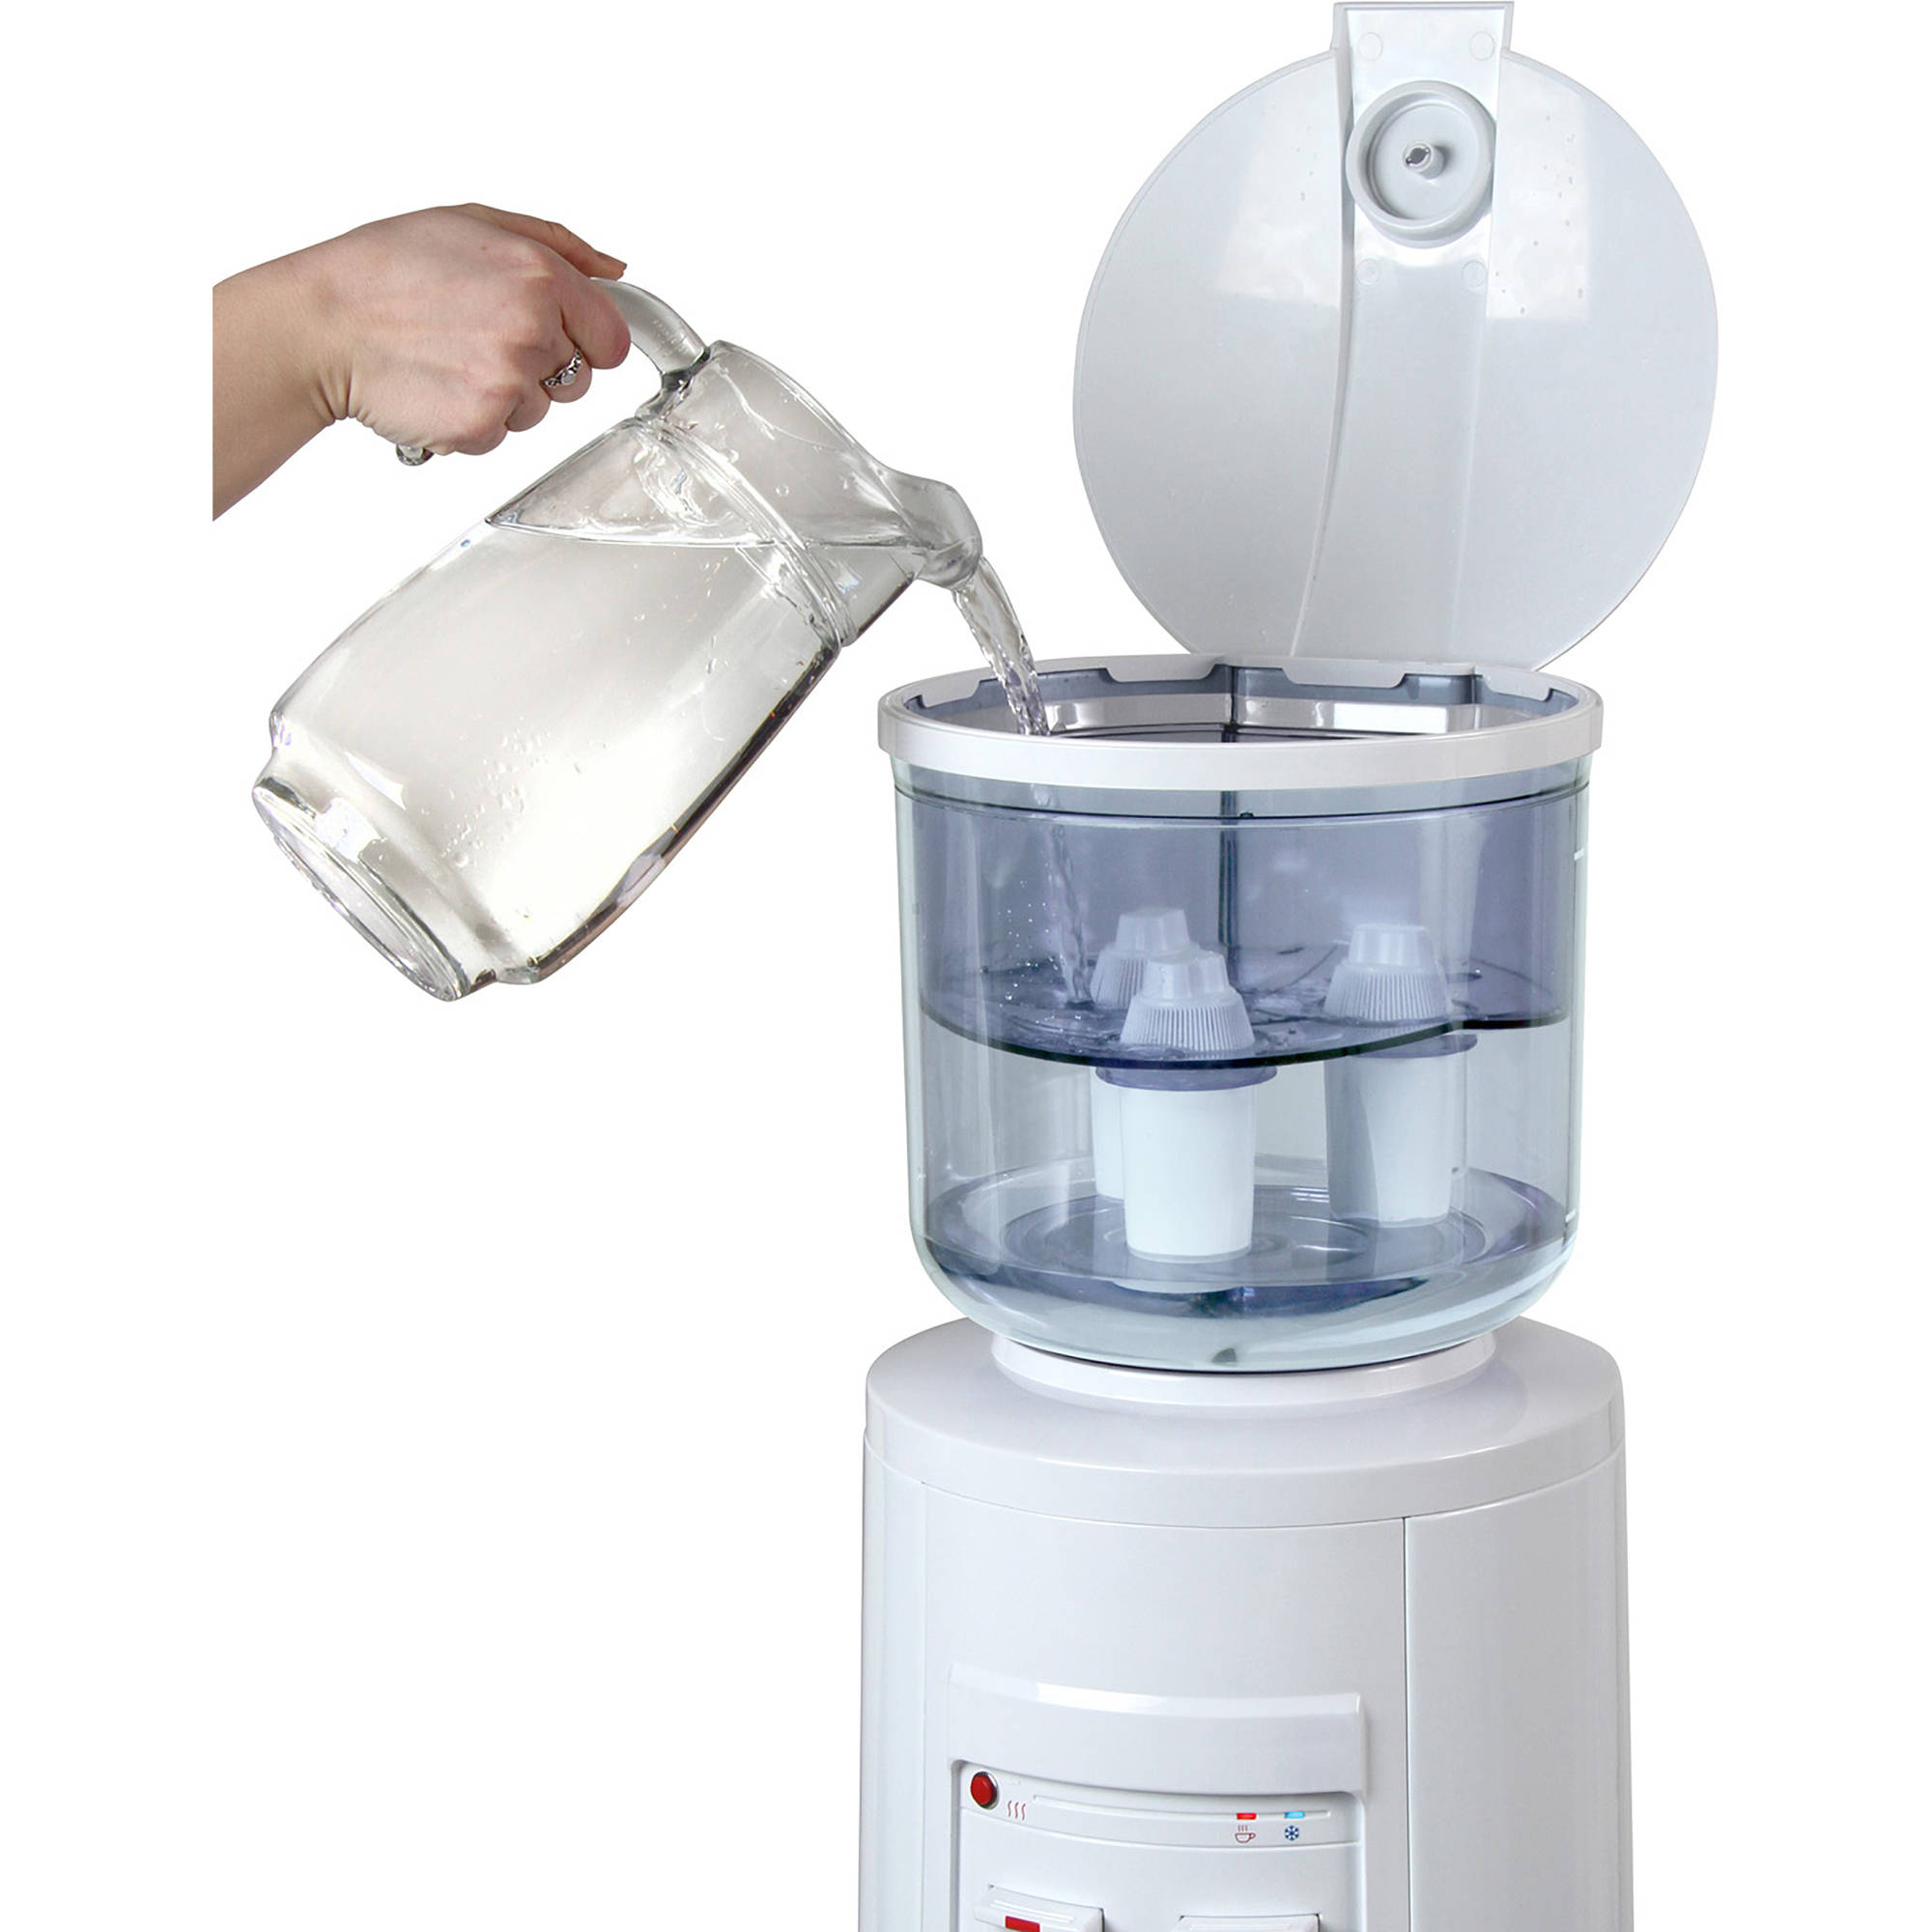 Water Filtration Dispenser Vitapur Vwf4 Water Filtration System For Water Dispensers